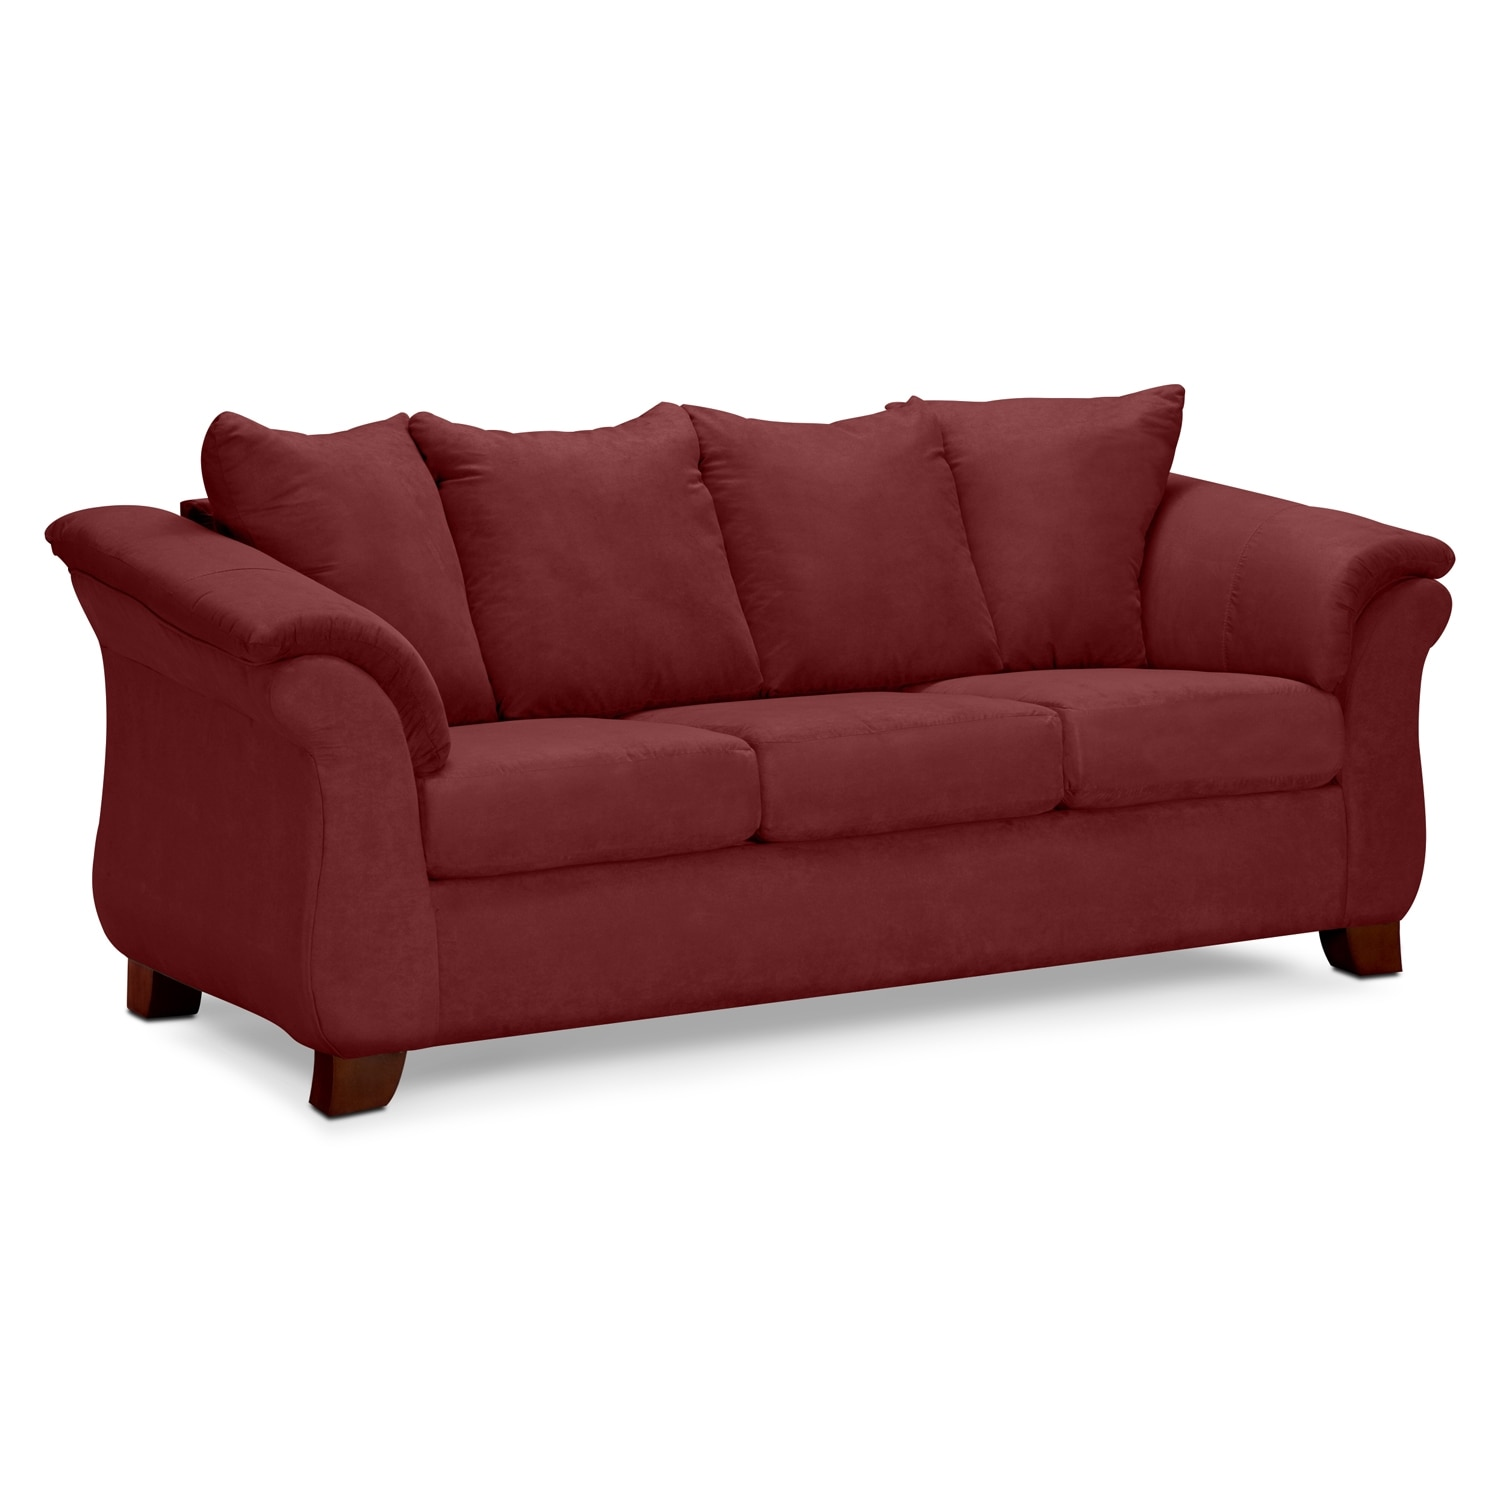 Good Red Sofa 19 With Additional Living Room Sofa Ideas with Red Sofa